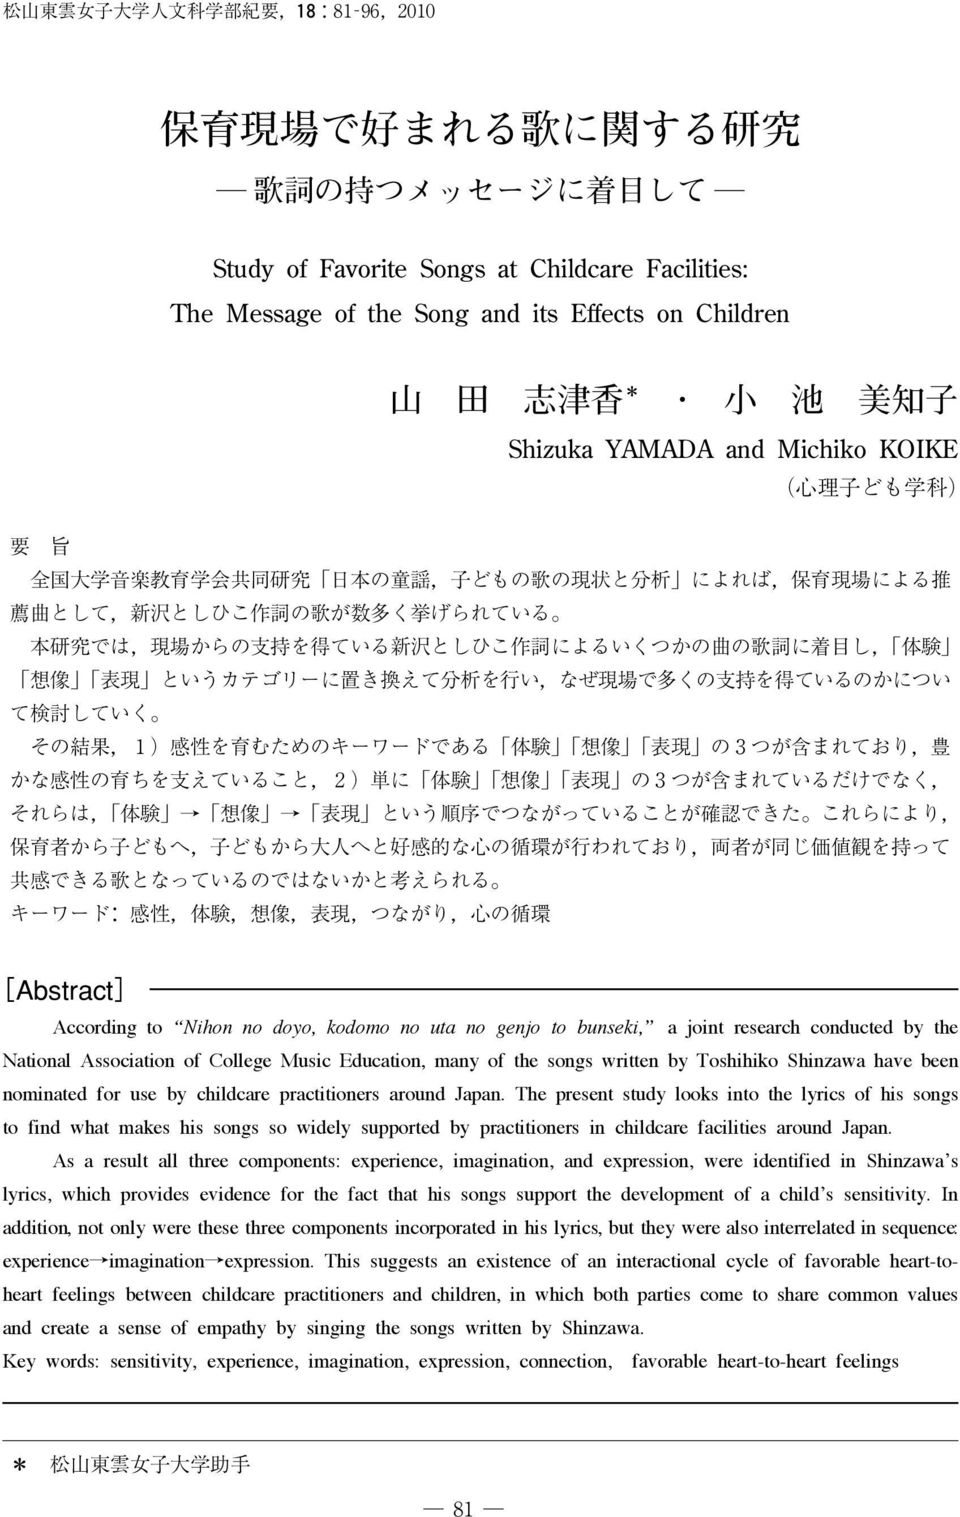 The present study looks into the lyrics of his songs to find what makes his songs so widely supported by practitioners in childcare facilities around Japan.